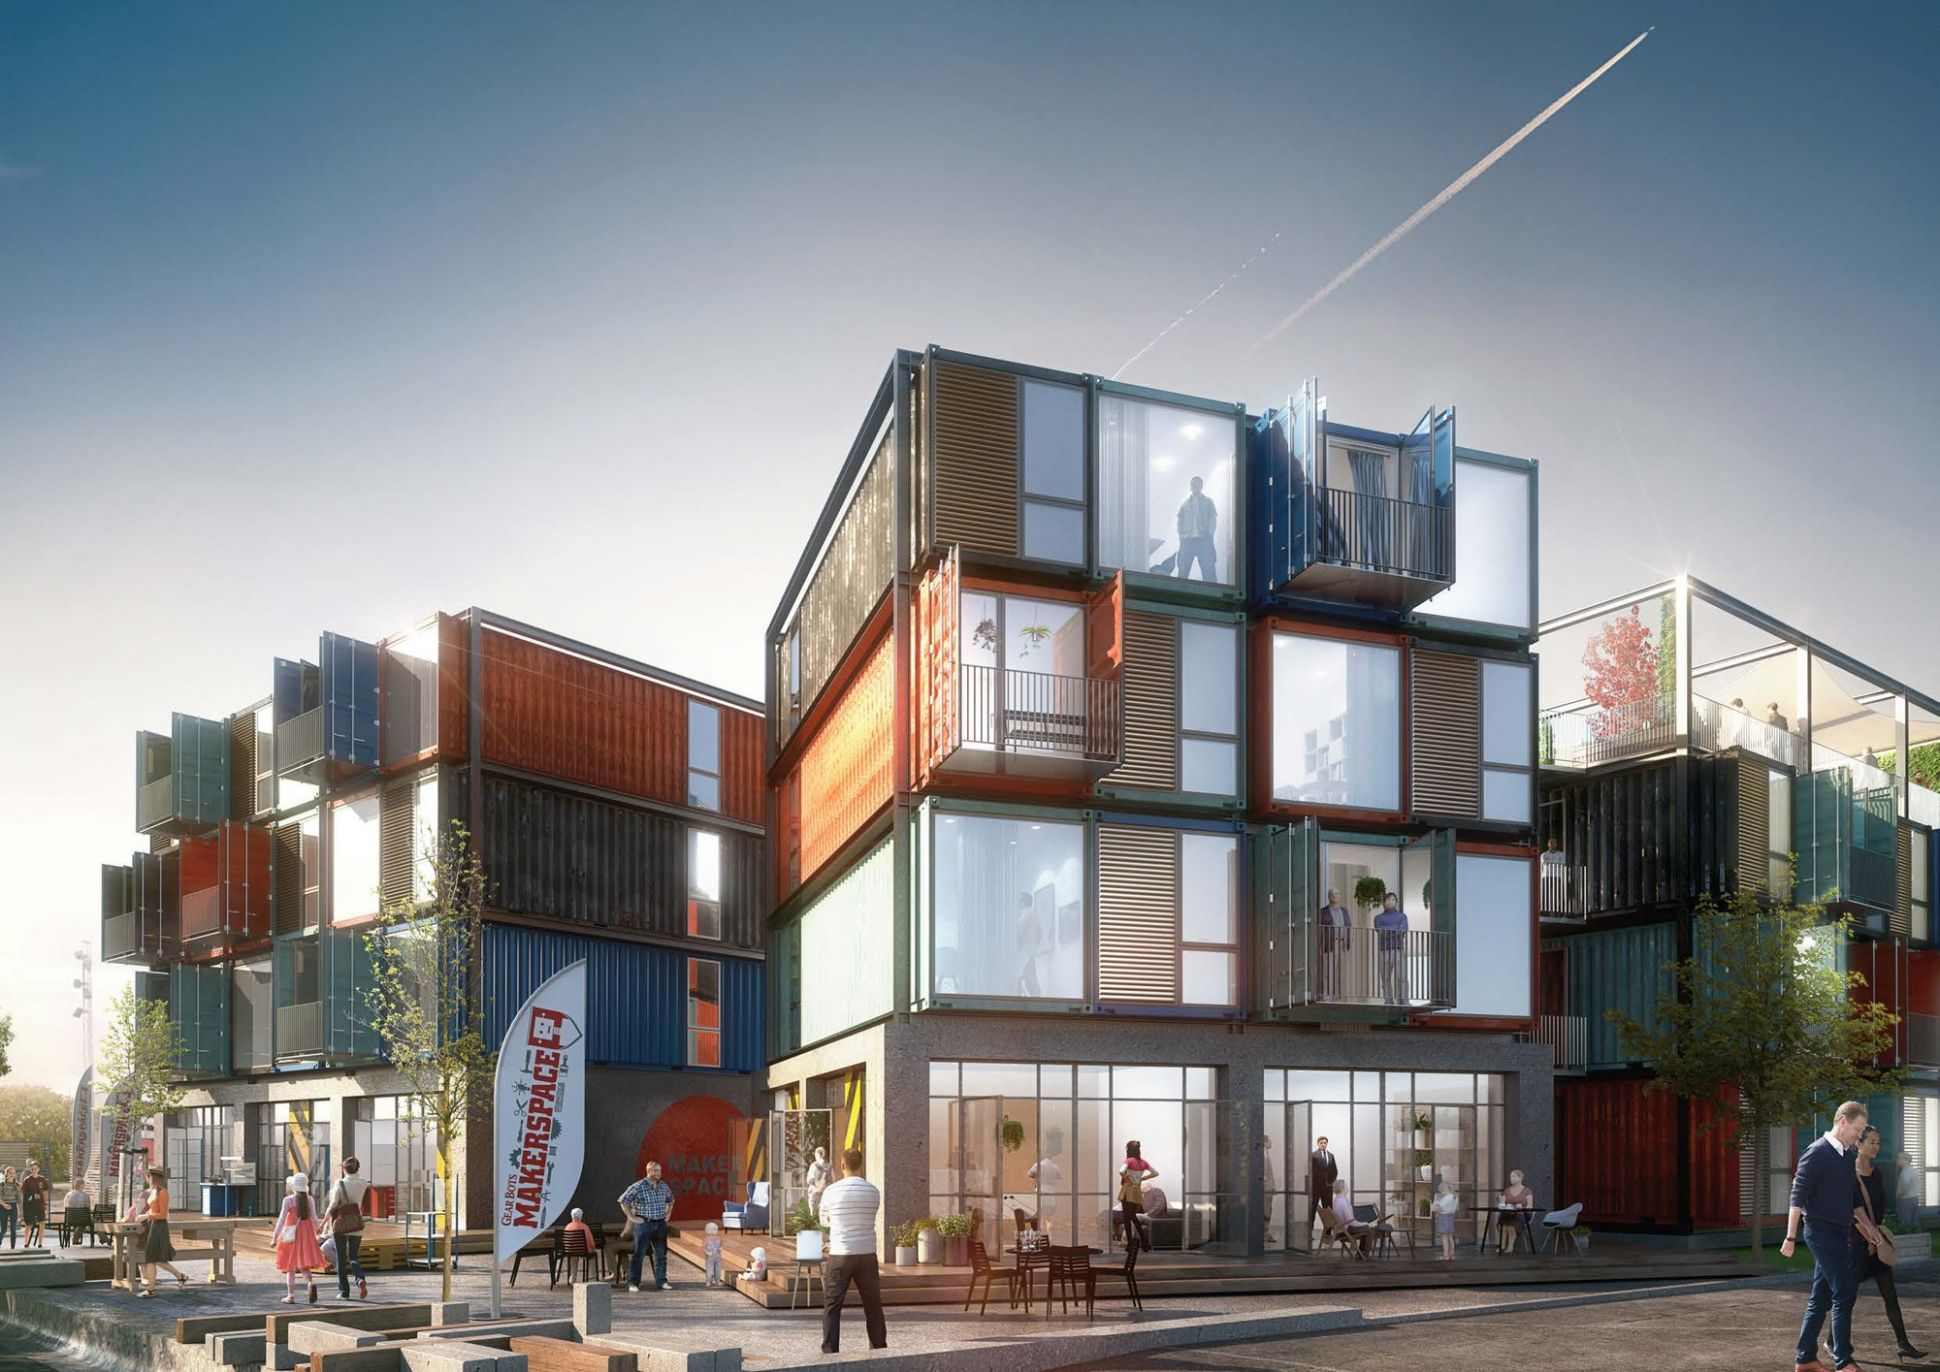 Arkitema Architects Designs 11 Shipping Container Apartments in ..